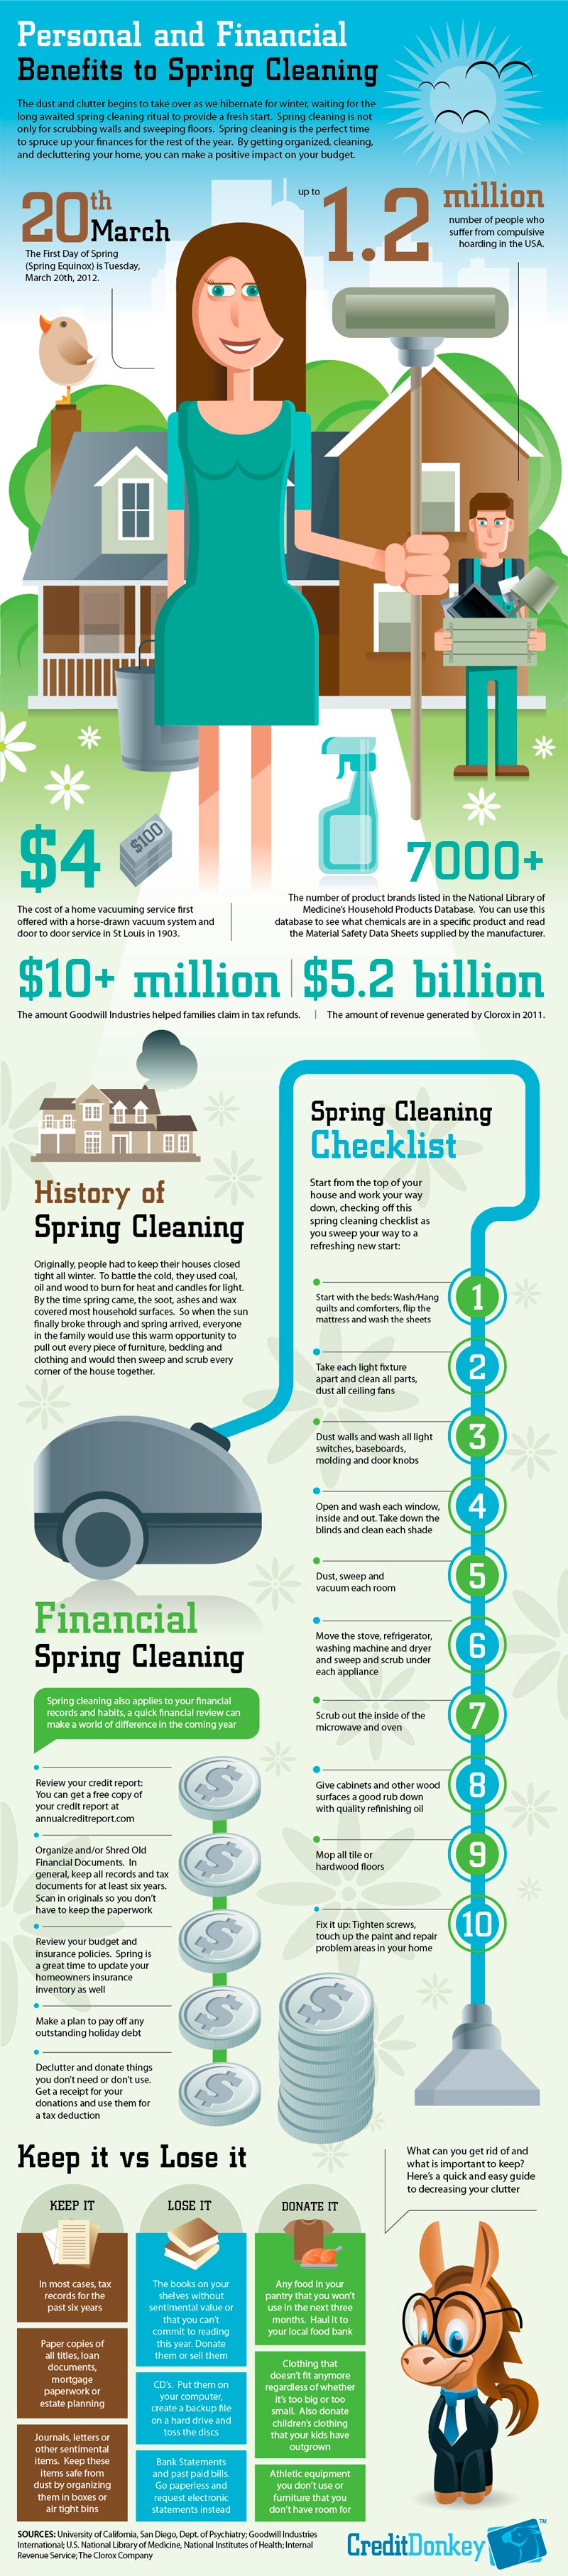 Infographic - Personal and Financial Benefits to Spring Cleaning